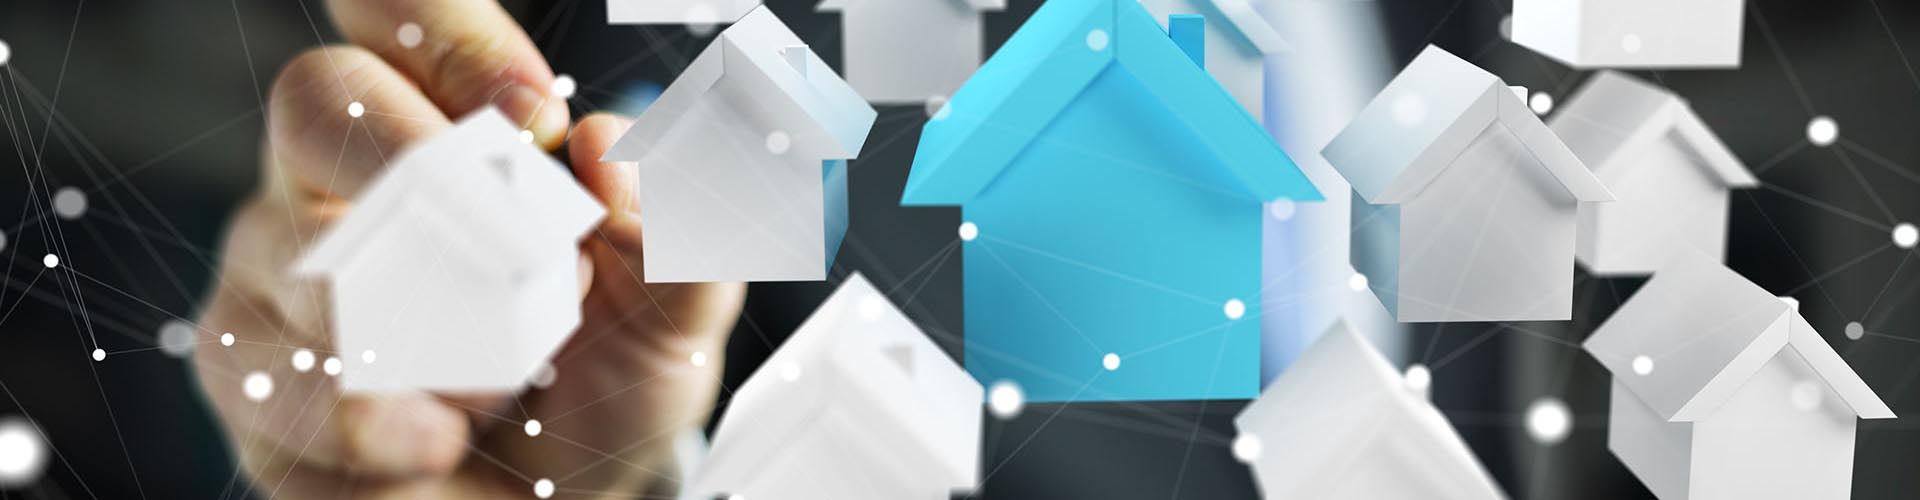 Businessman on blurred background using 3D rendered small white and blue houses